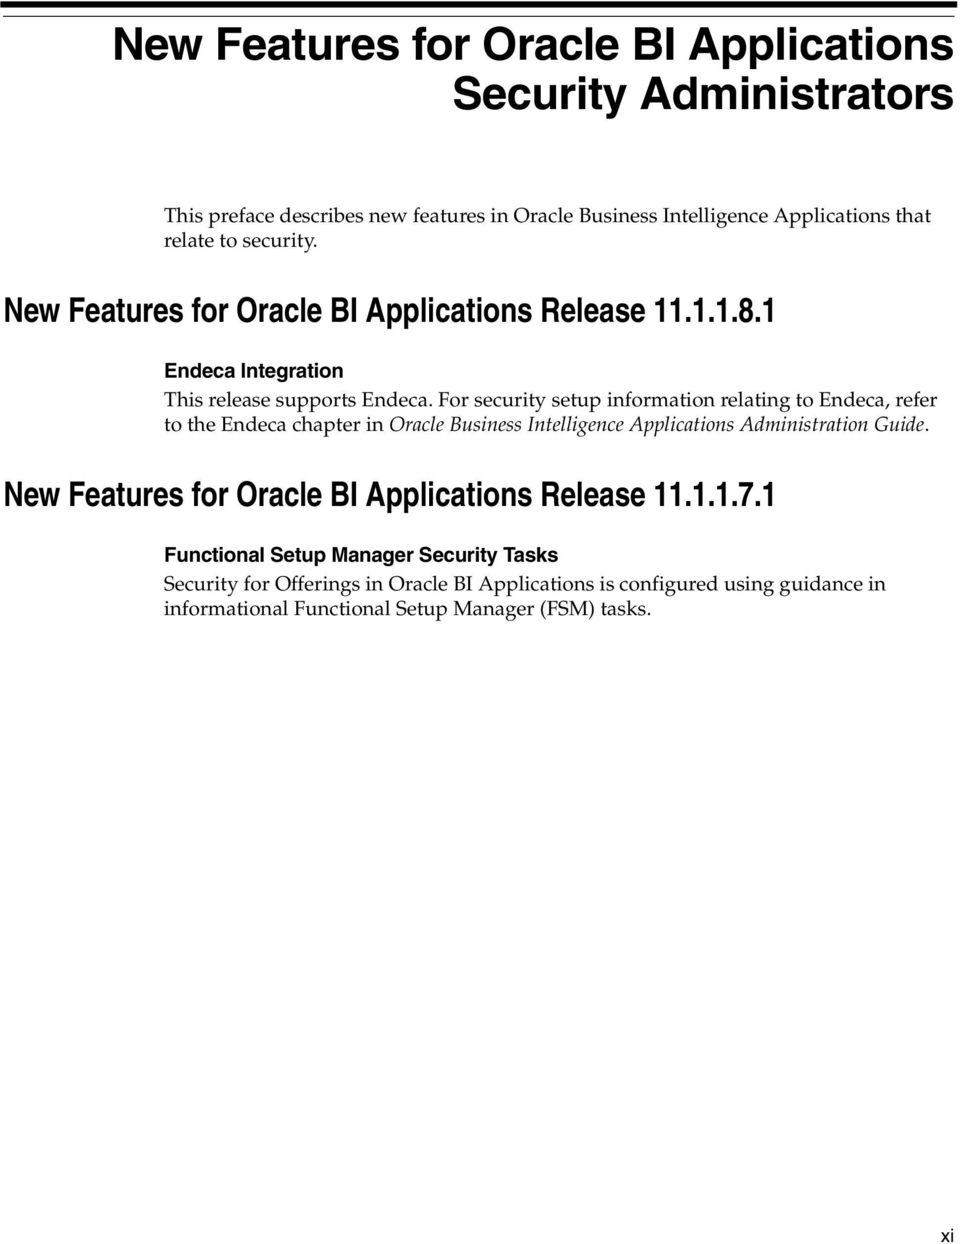 For security setup information relating to Endeca, refer to the Endeca chapter in Oracle Business Intelligence Applications Administration Guide.